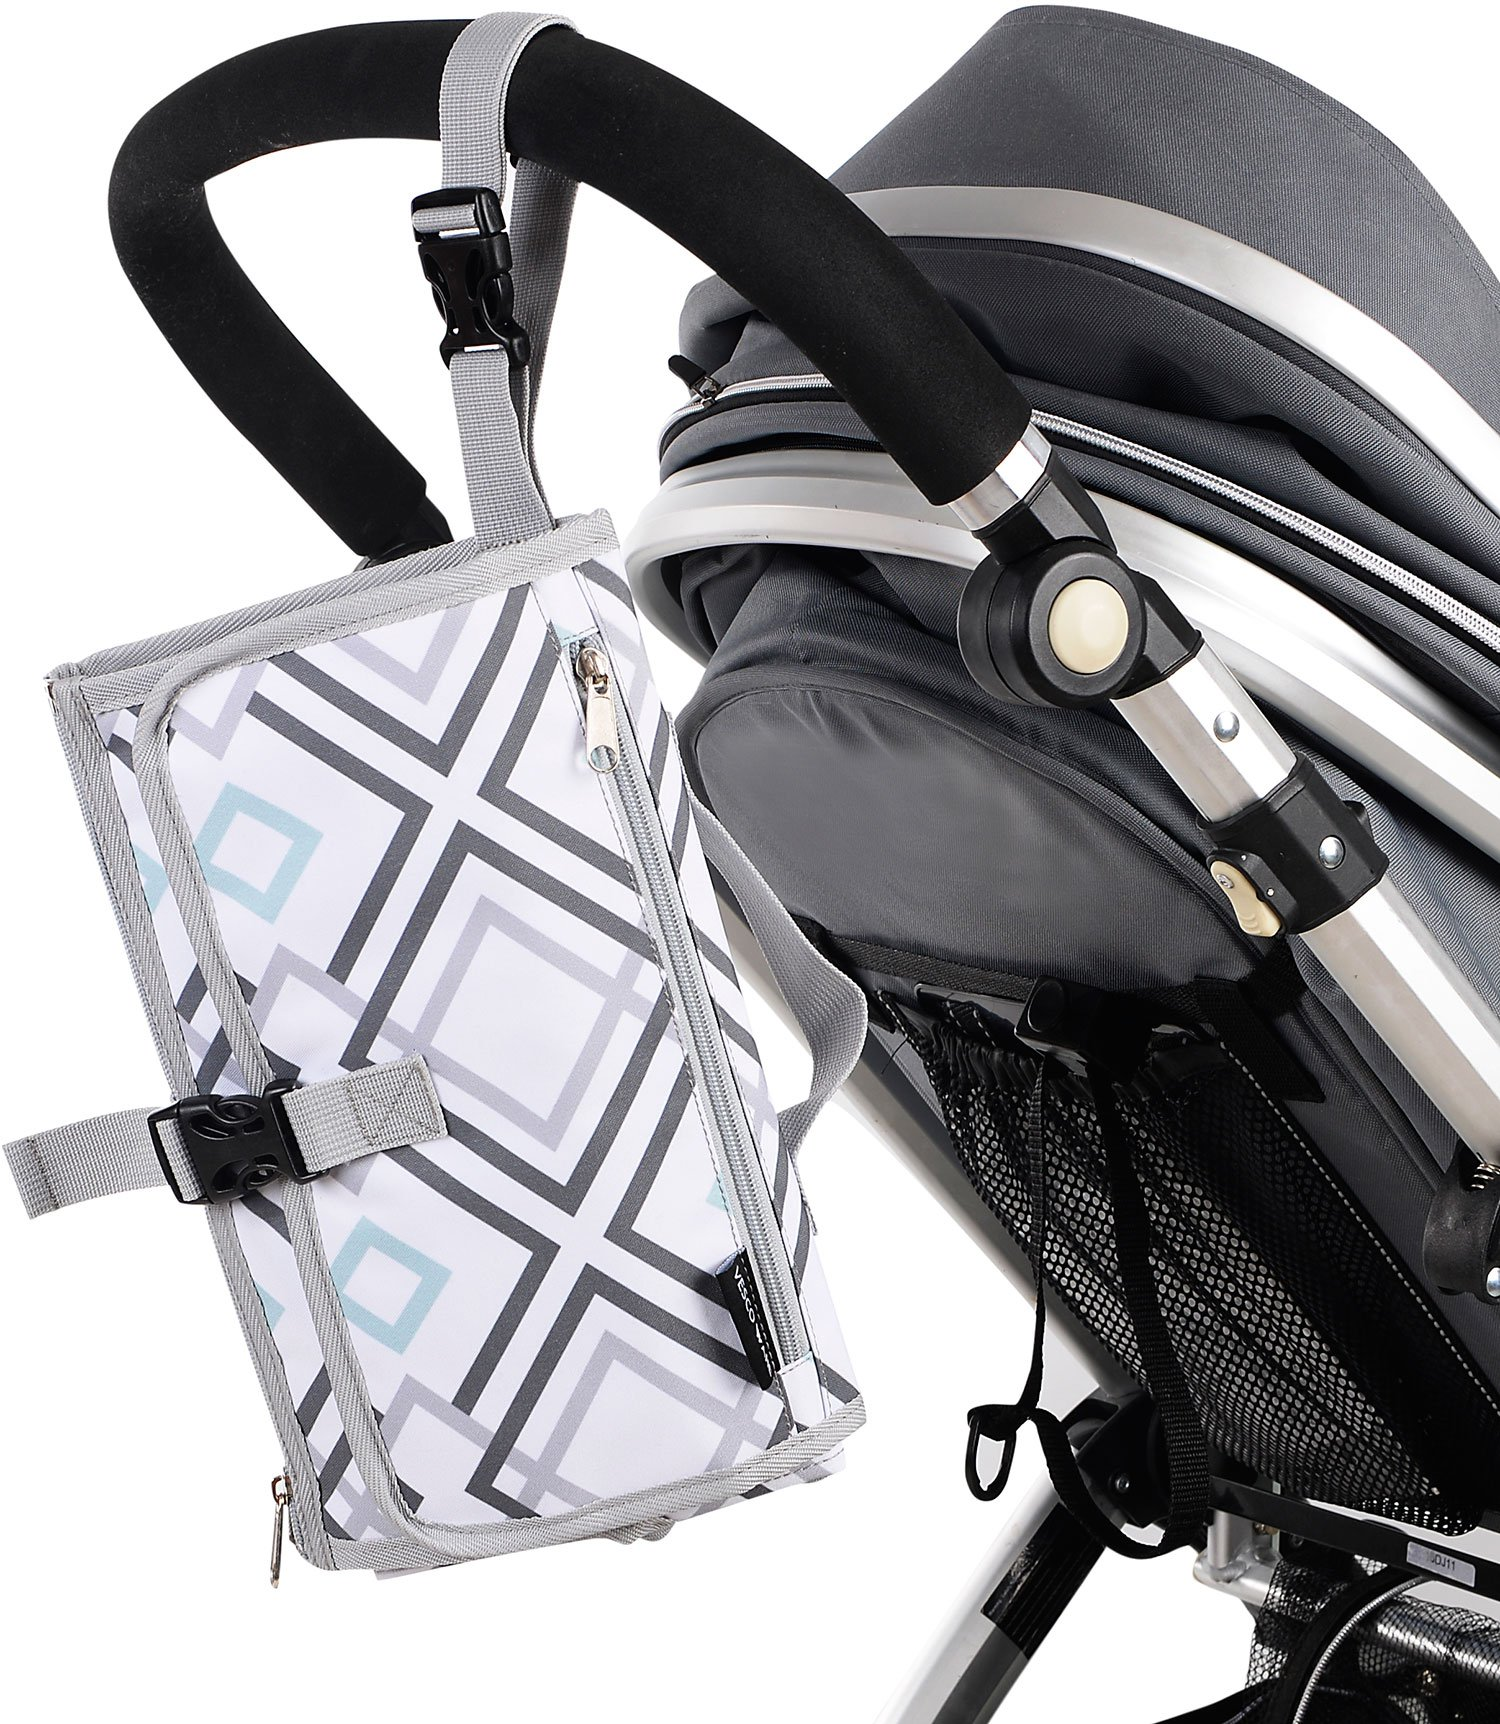 Portable Baby Changing Mat - Large Waterproof Diaper Changing Station - Padded Travel Pad with Head Cushion, 3 Pockets, Multi-Color by Vescoware (Image #7)